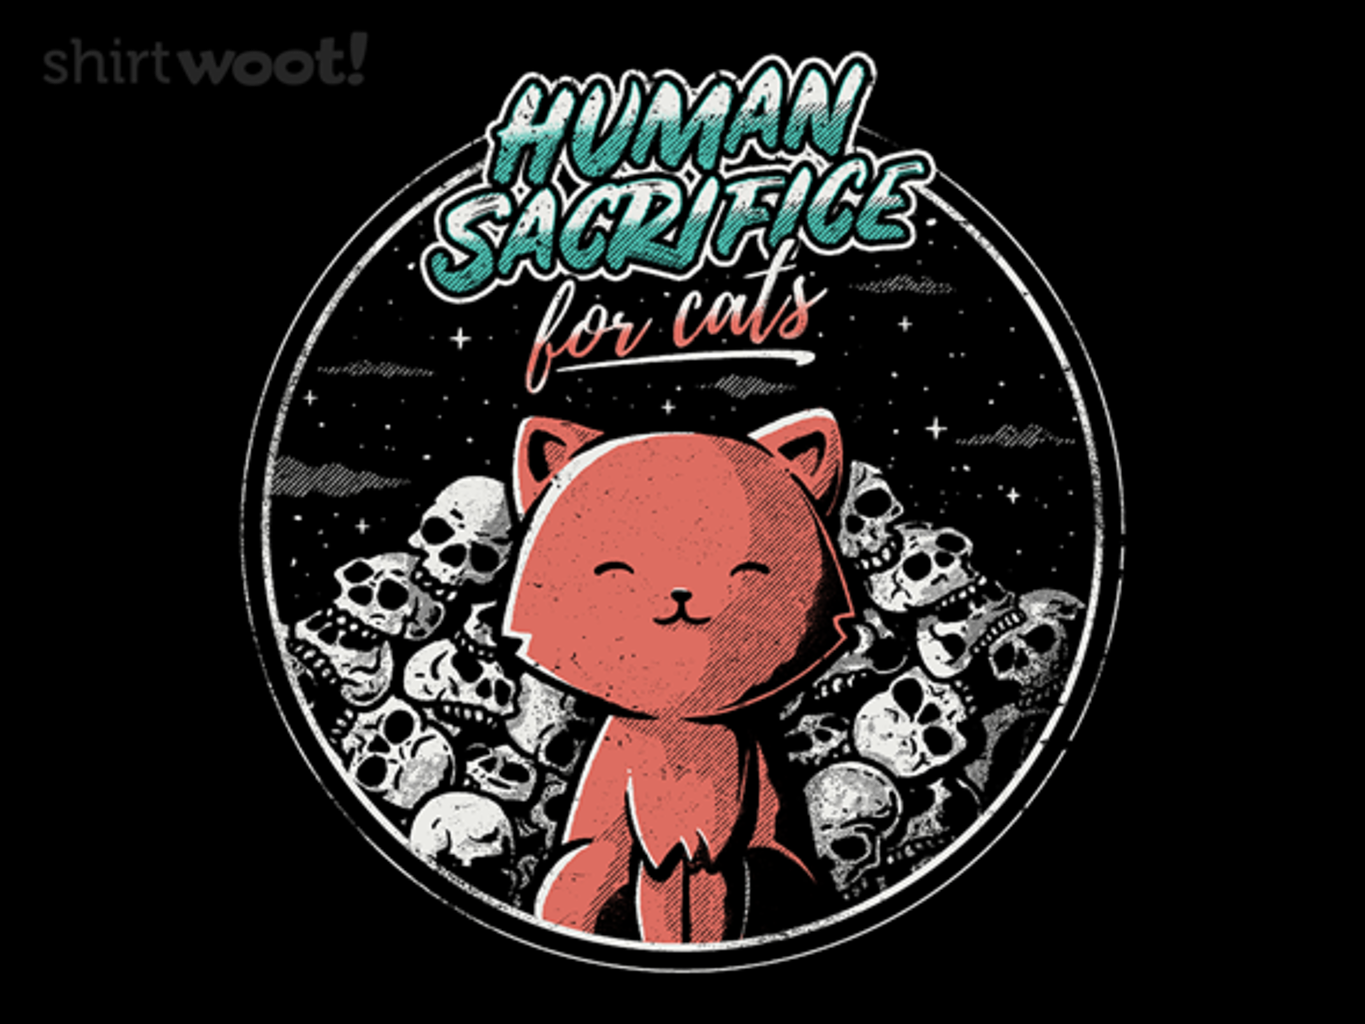 Woot!: Human Sacrifice - For Cats